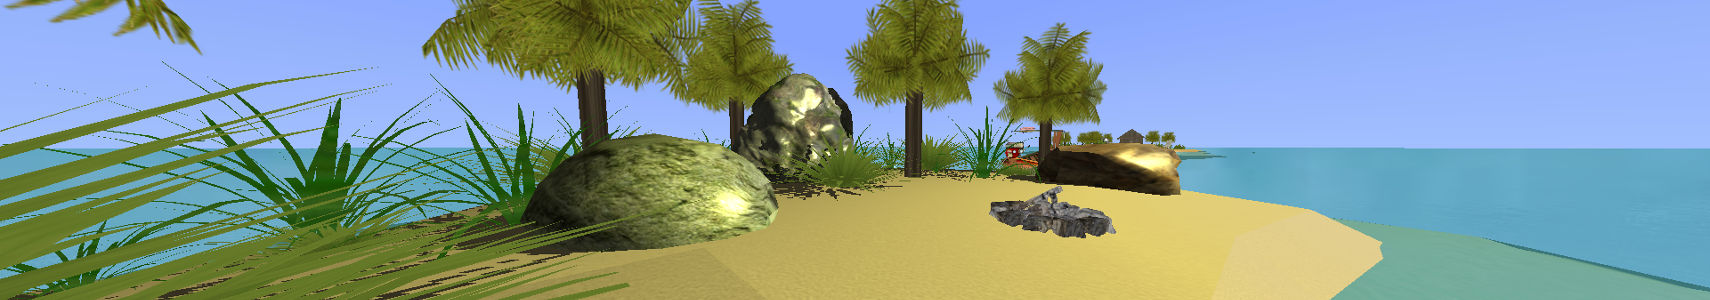 Cyberix3D - Free Online 3D Game Maker